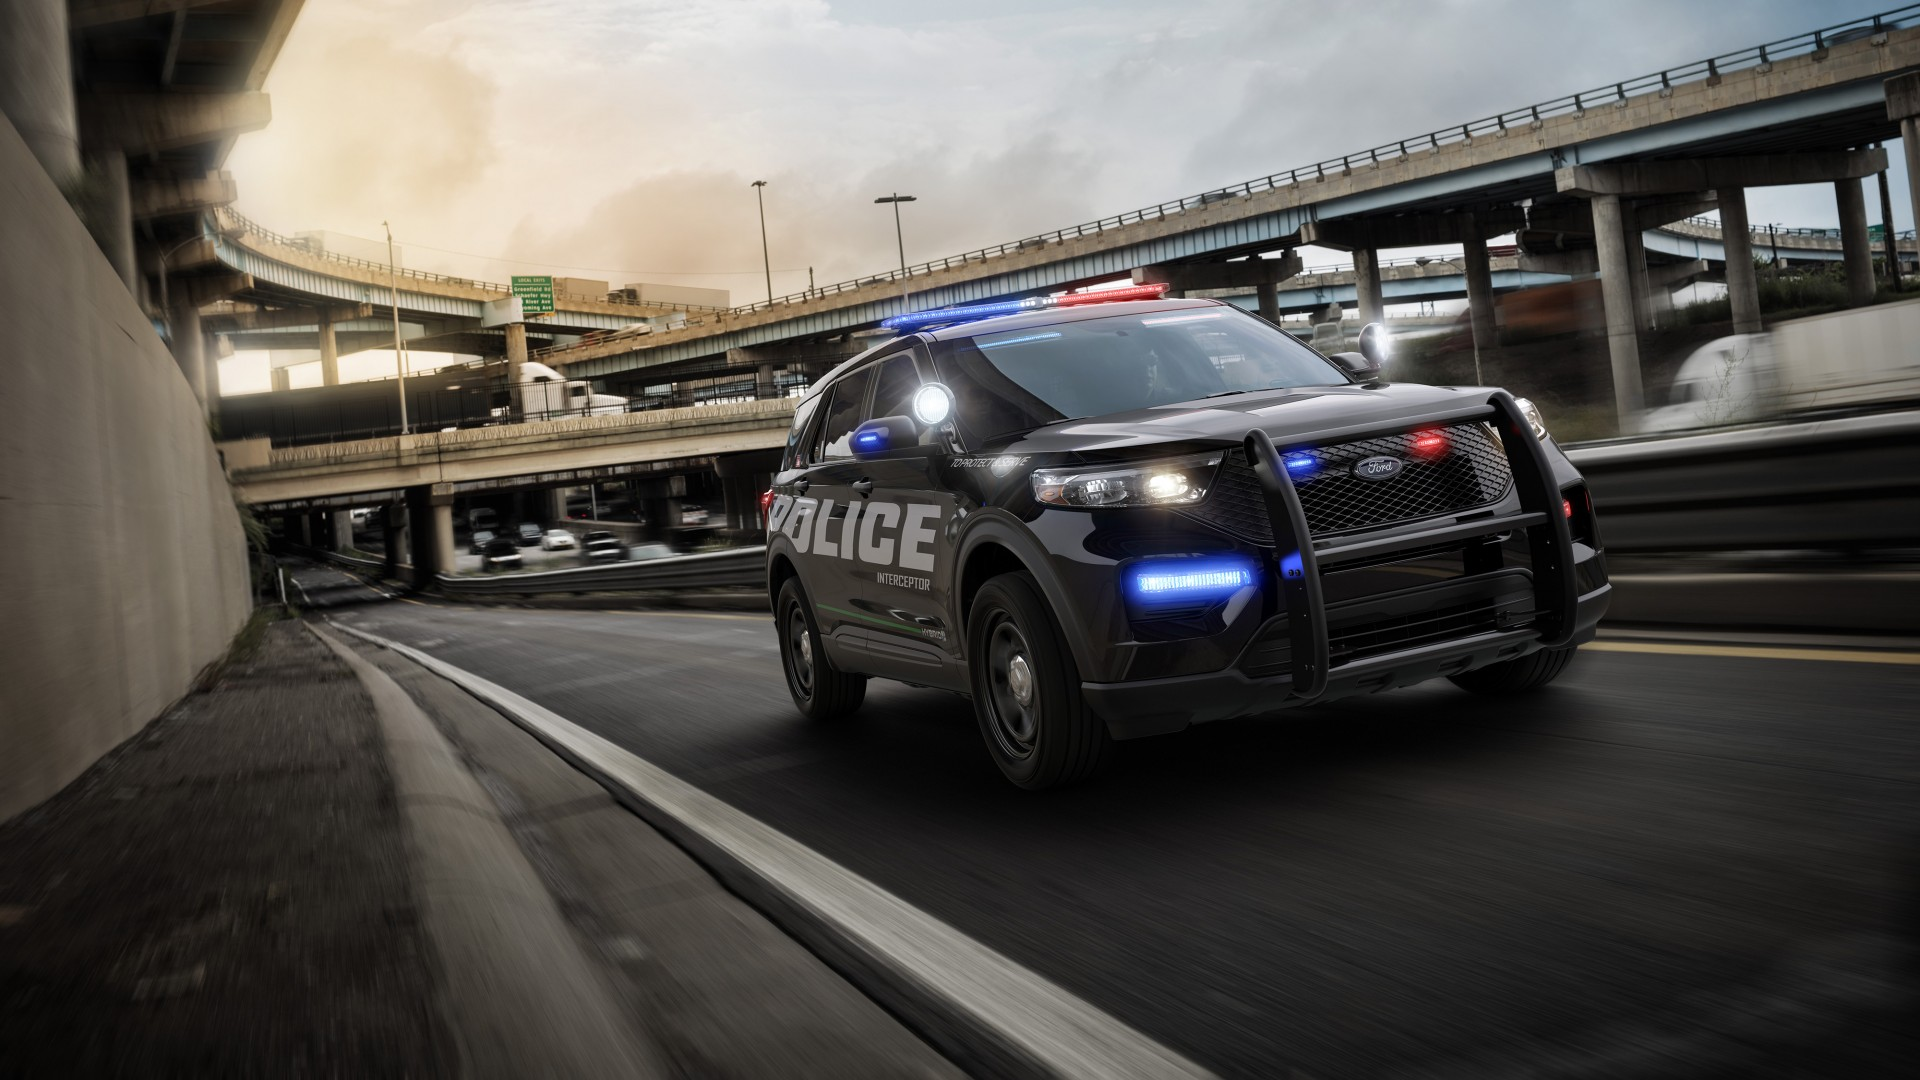 2020 Ford Police Interceptor Utility 4k Wallpaper Hd Car